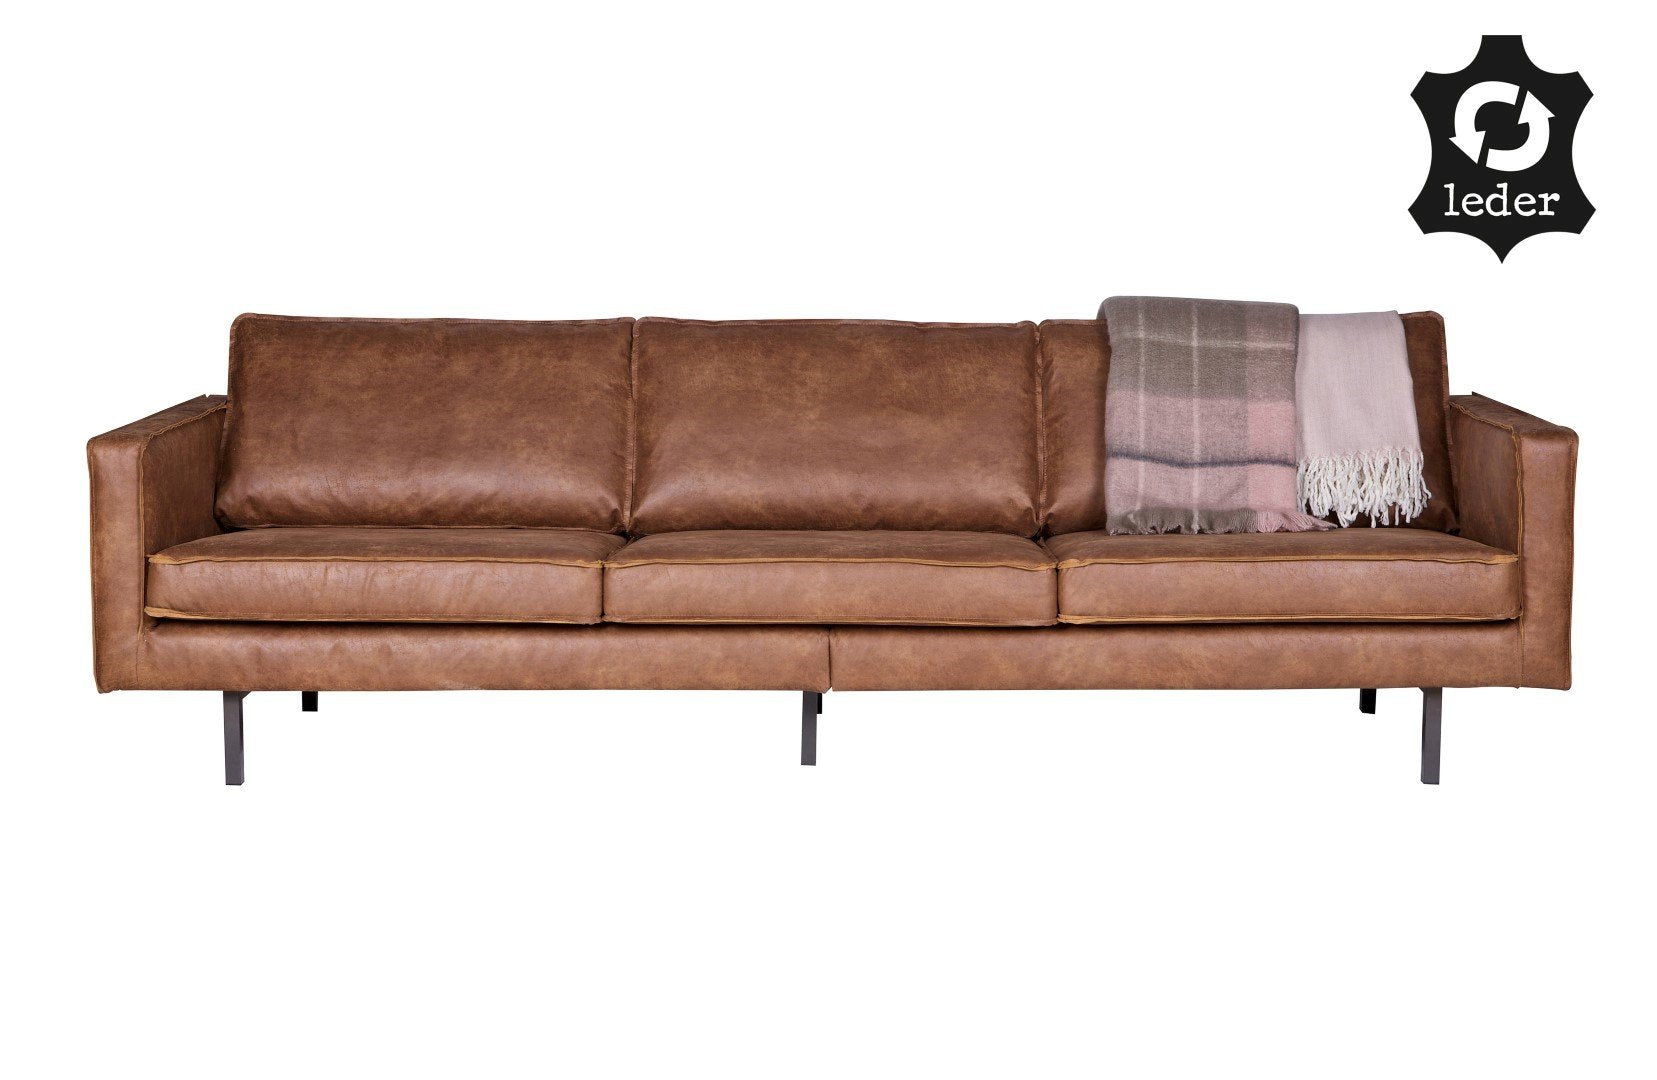 Sofa RODEO leather